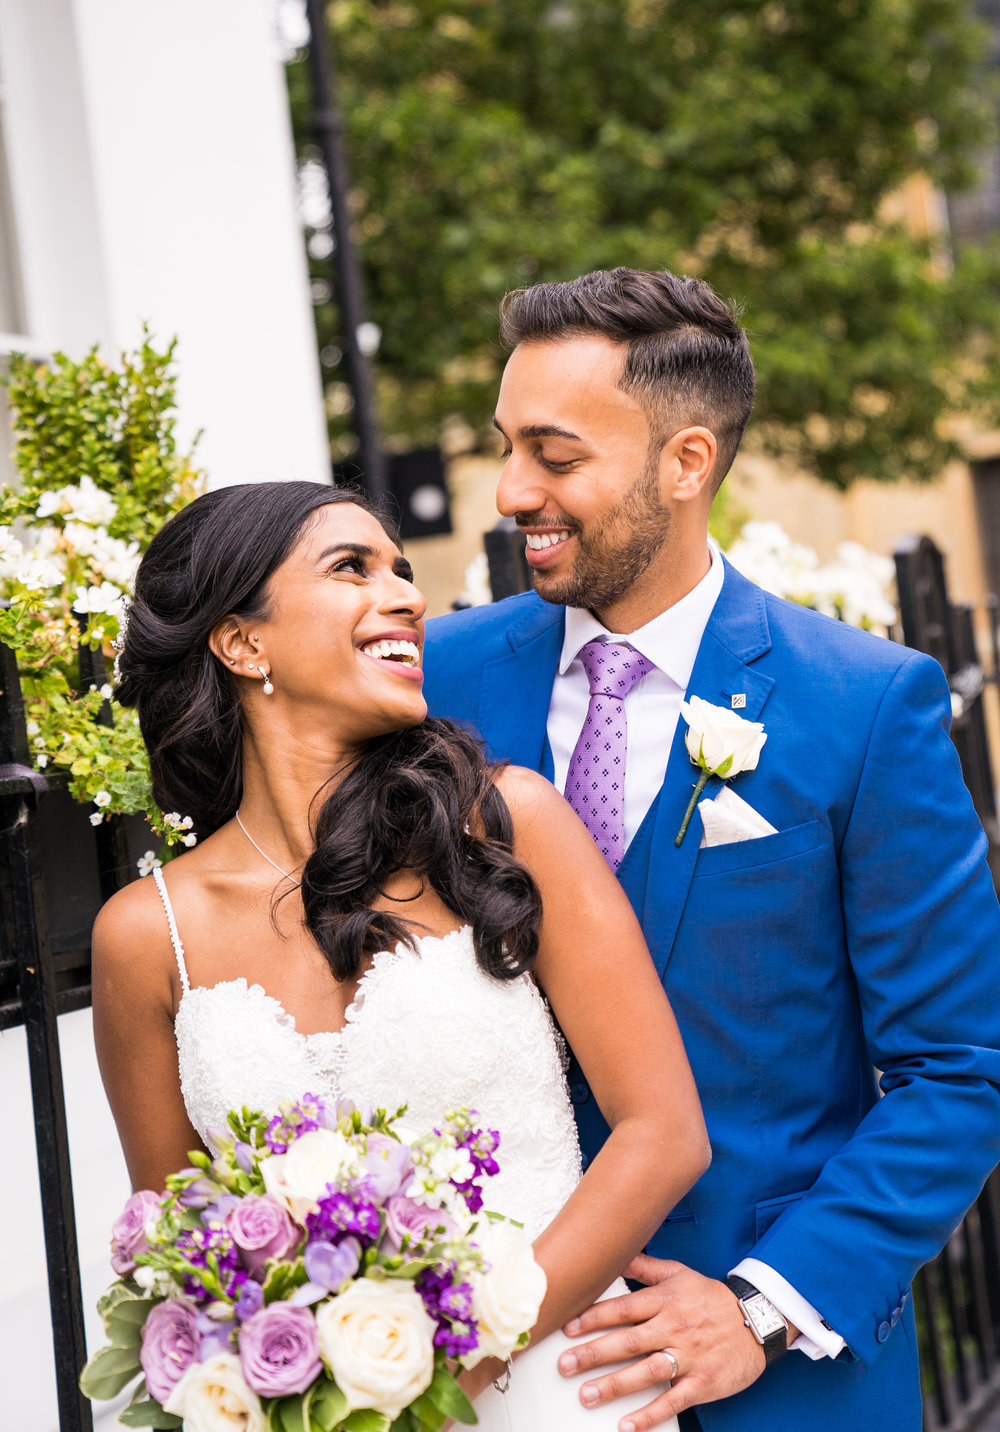 anglo-asian-hindu-civil-wedding-photography-videography-london-portrait-marylebone-old-town-hall-58